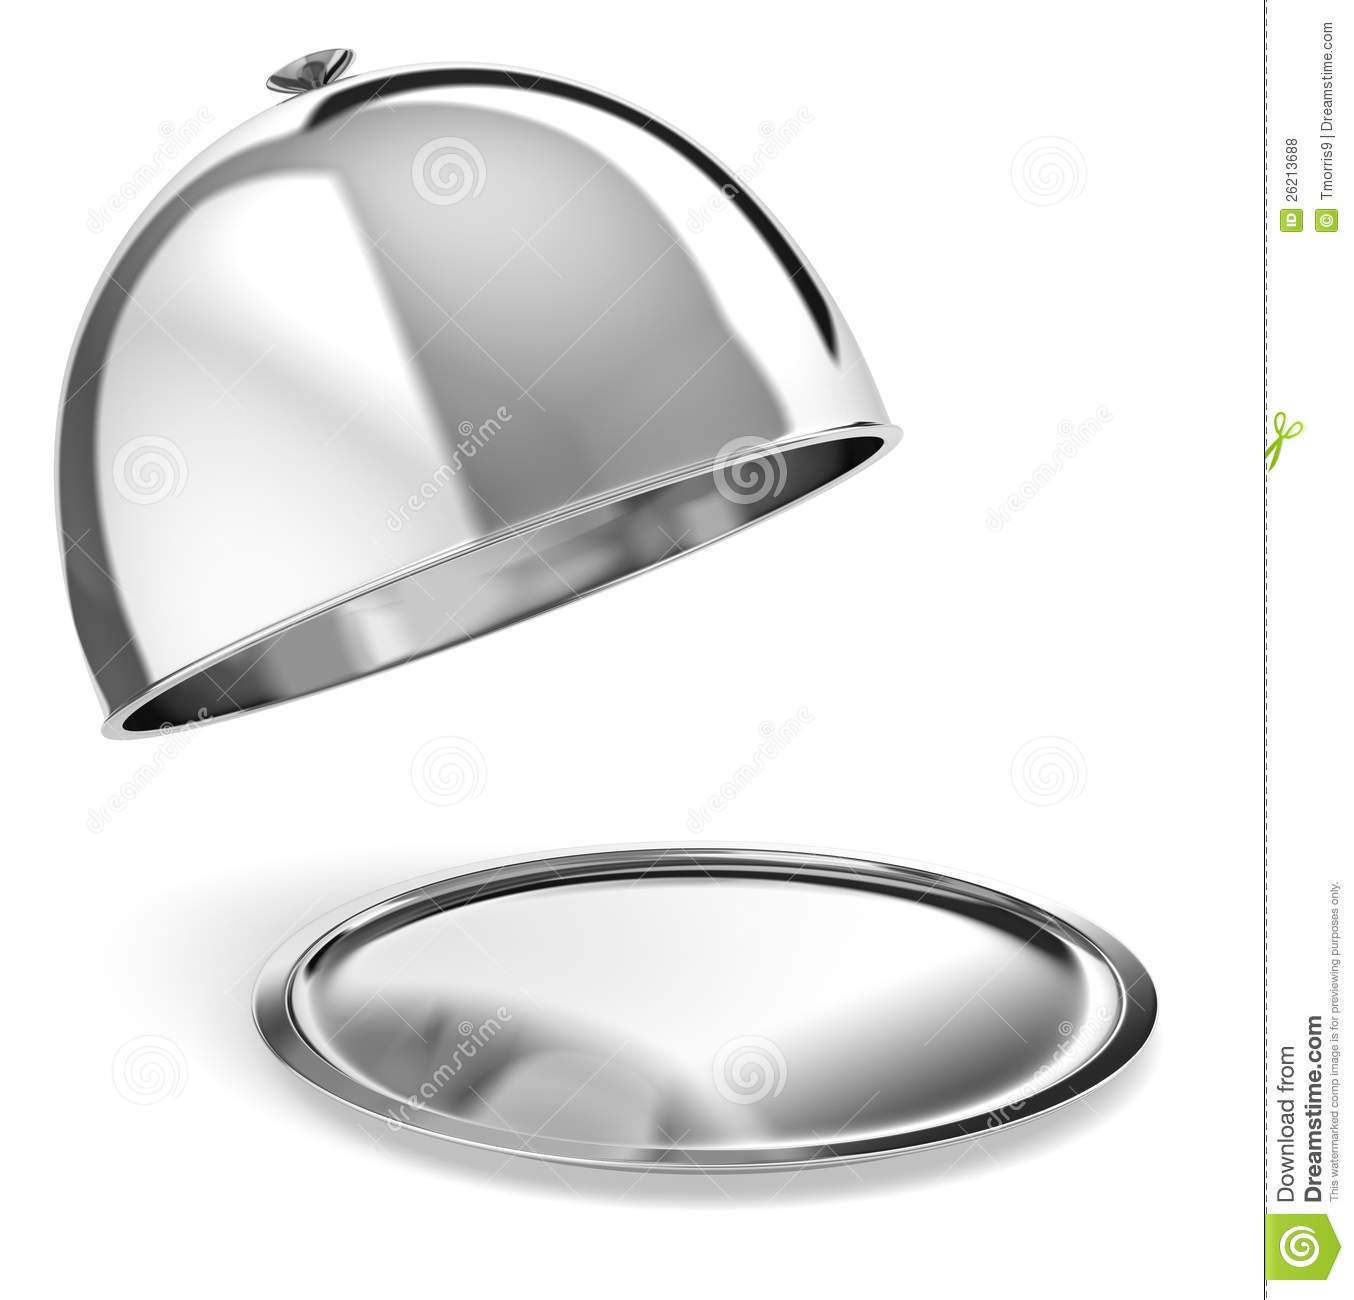 style serving tray as used for room service or fancy restaurants